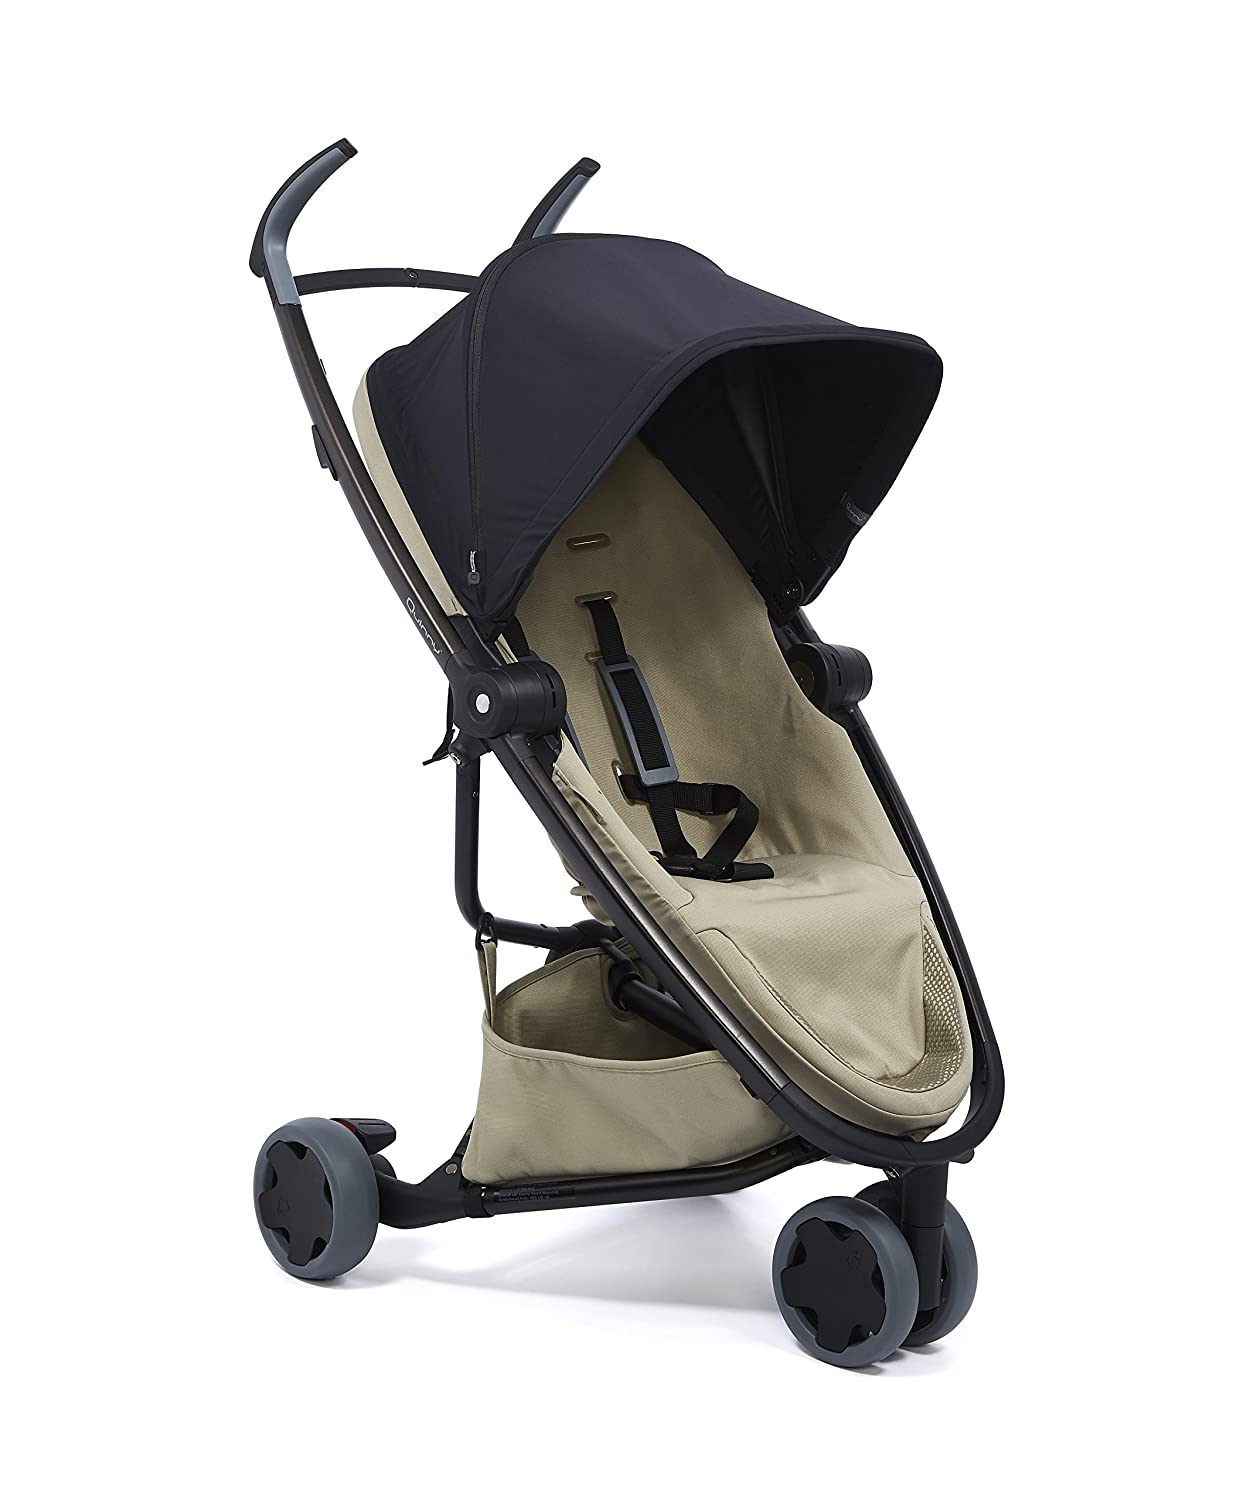 Quinny Zapp Flex Lightweight City Stroller Graphite on Grey 6 Months to 3.5 Years Two-Way Seat Compact Folding